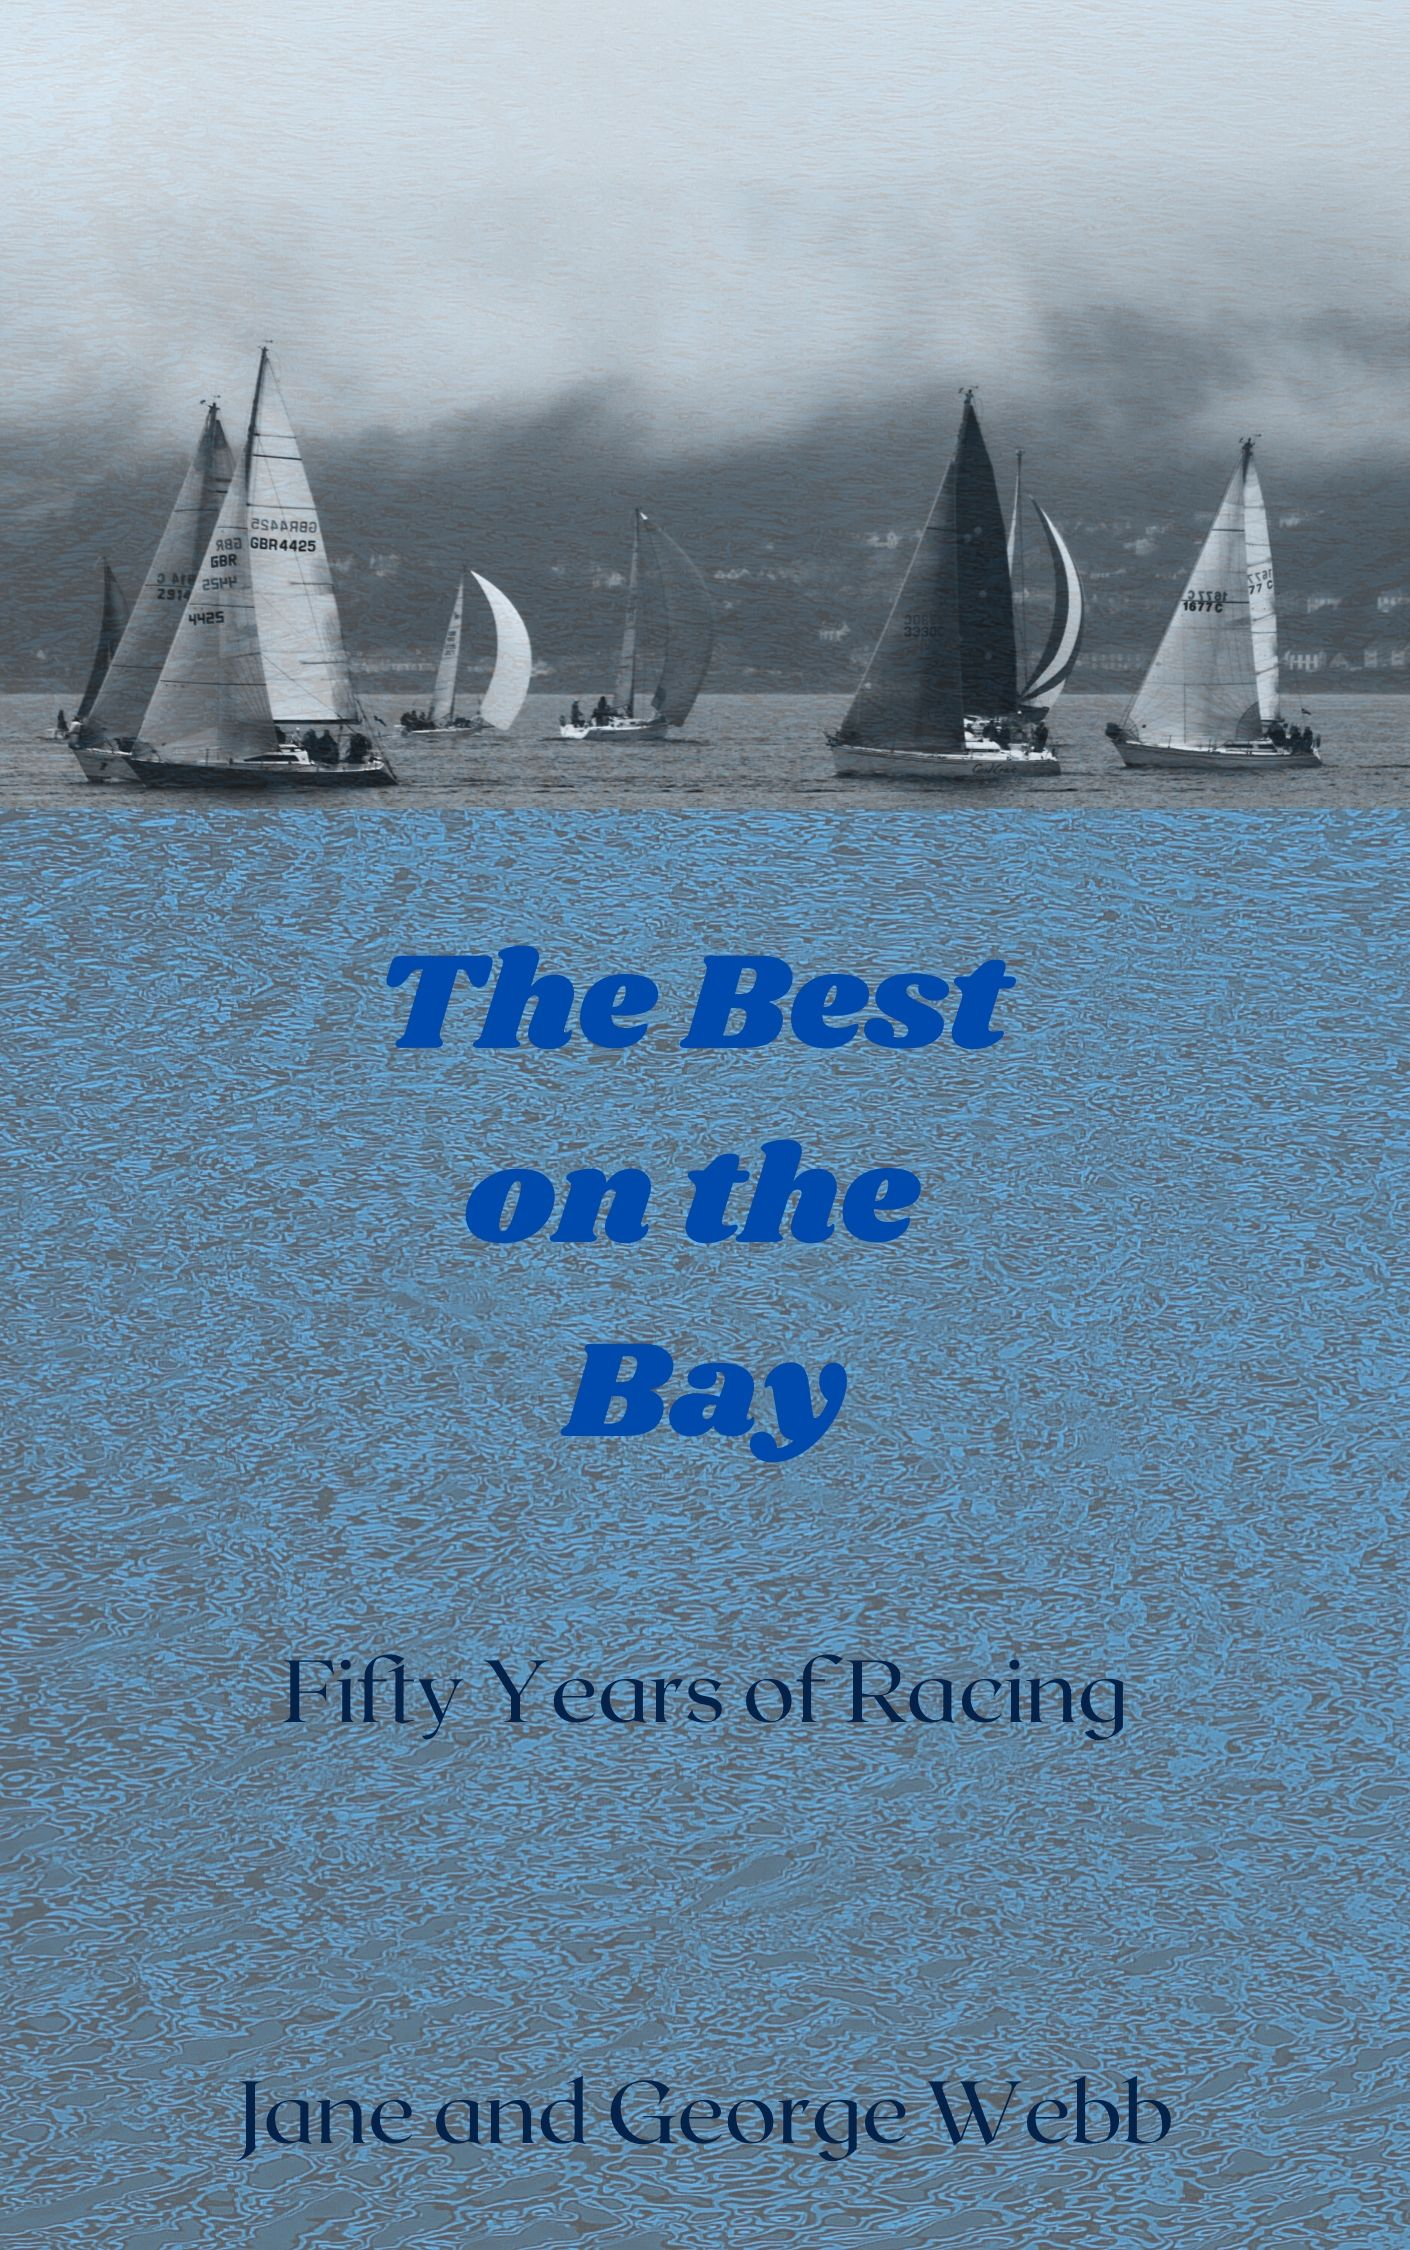 The Best on the Bay: Fifty Years of Racing